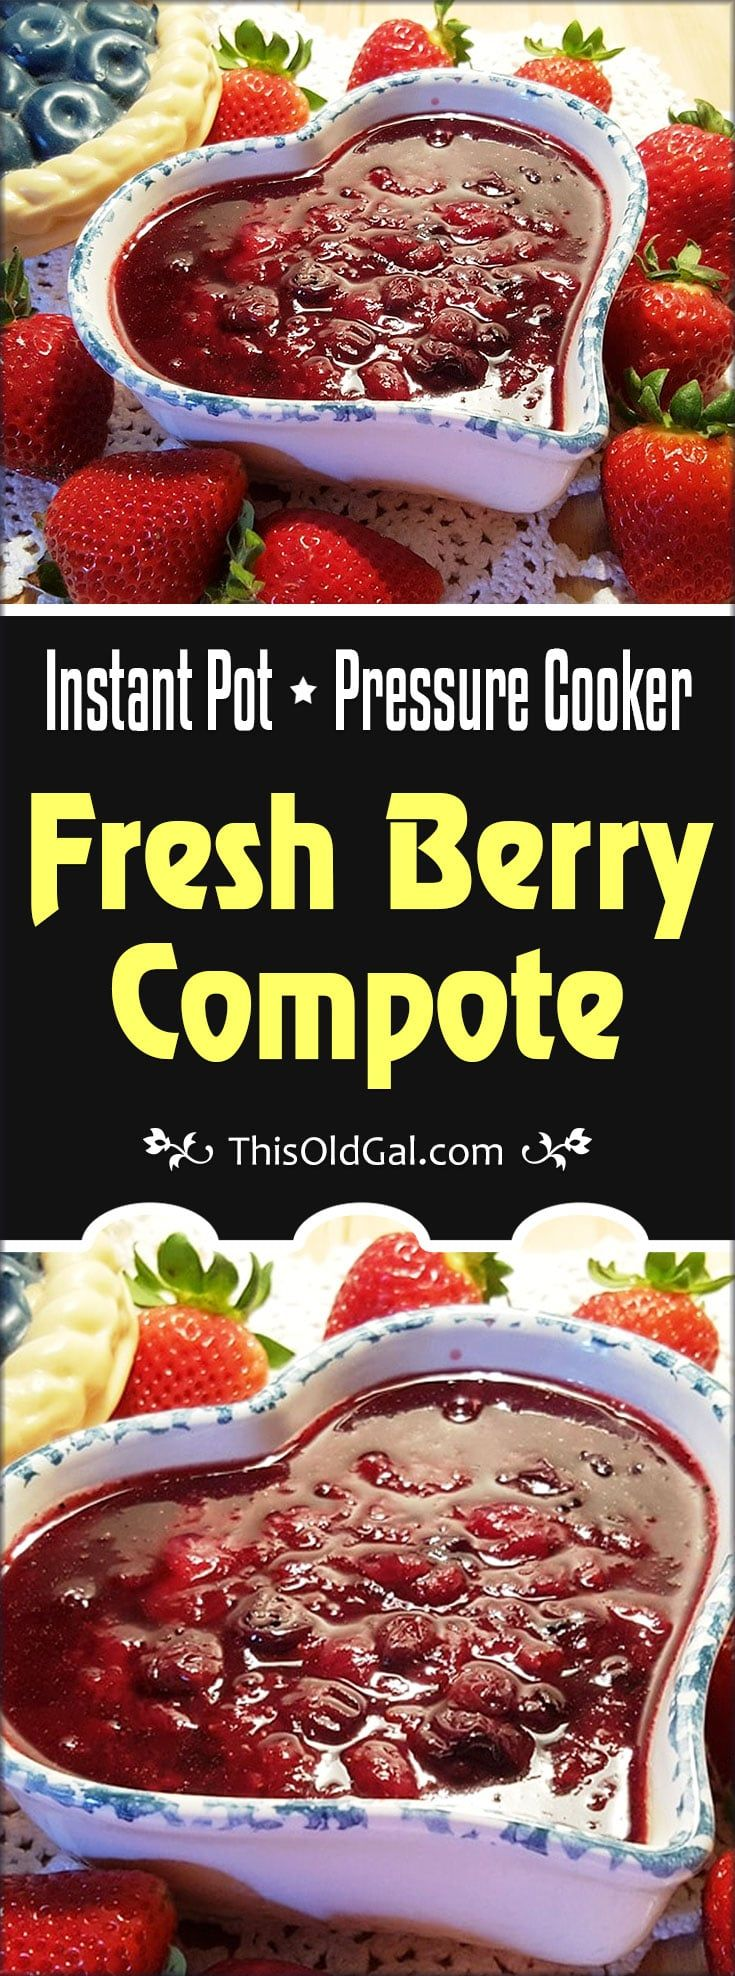 Pressure Cooker Fresh Berry Compote is a sweet and refreshing summer treat. A minute in the Pressure Cooker is all it takes! via @thisoldgalcooks